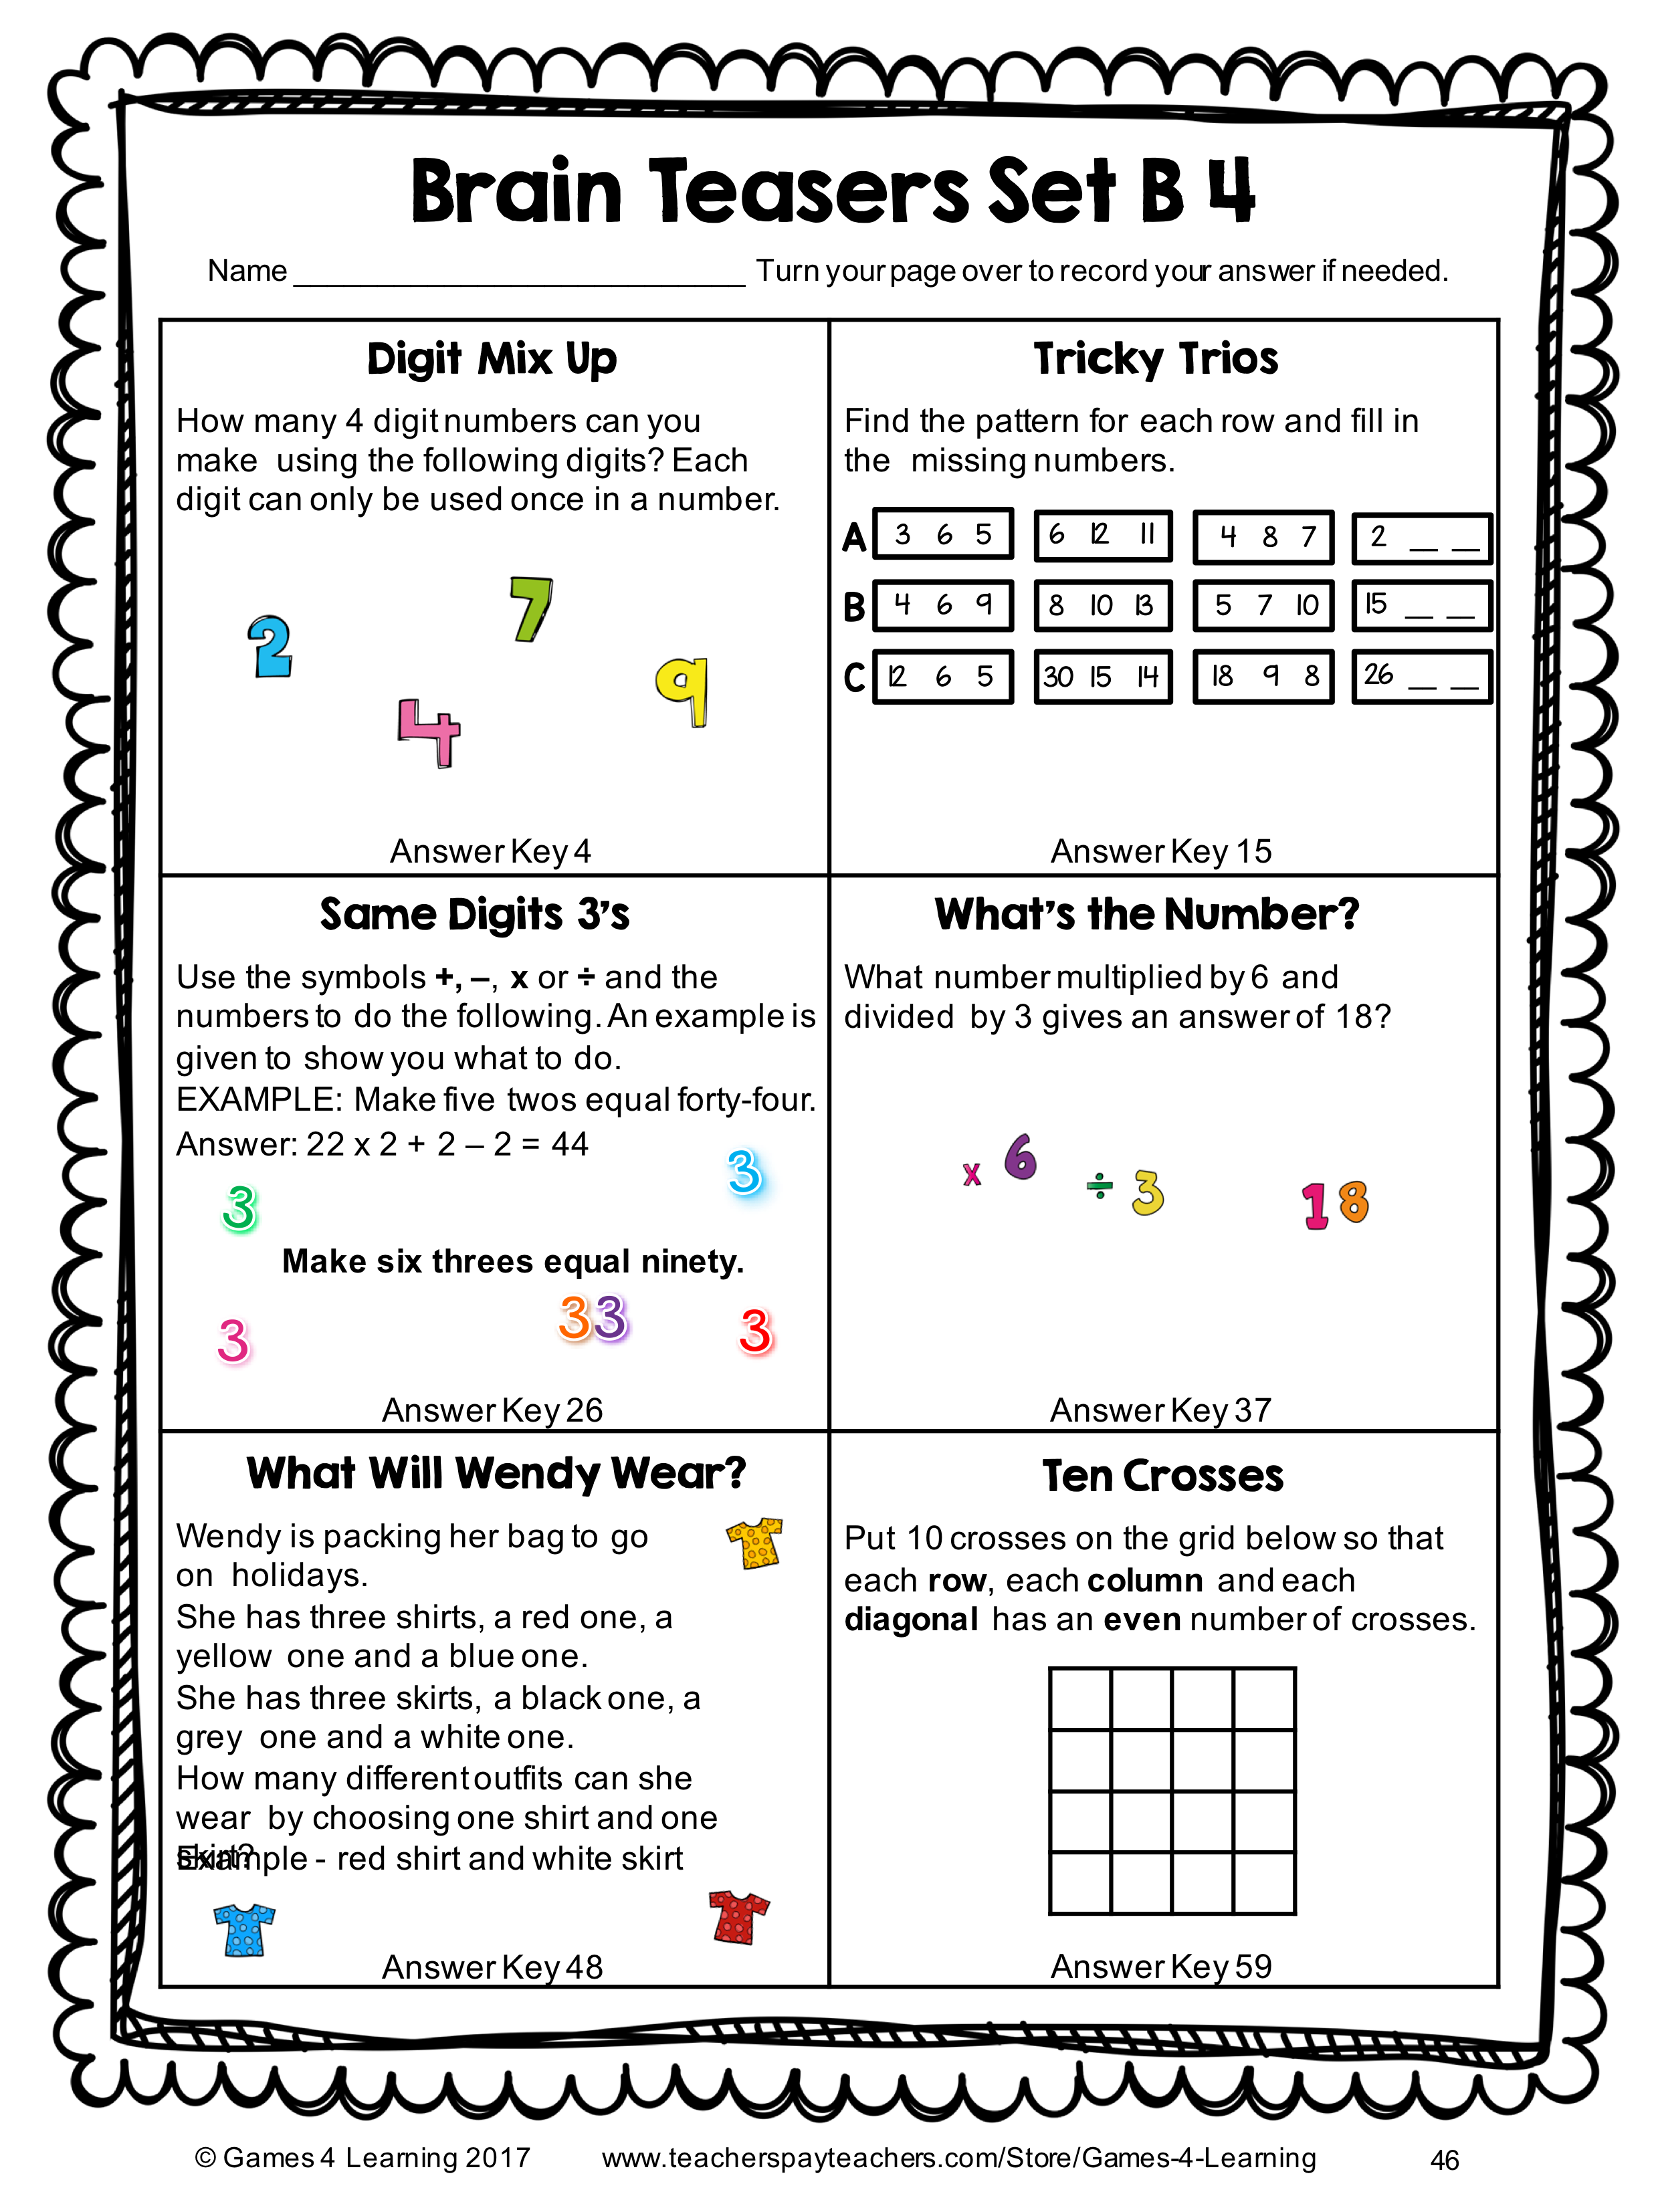 - Math Task Cards: Math Problems And Math Brain Teasers Cards Set B